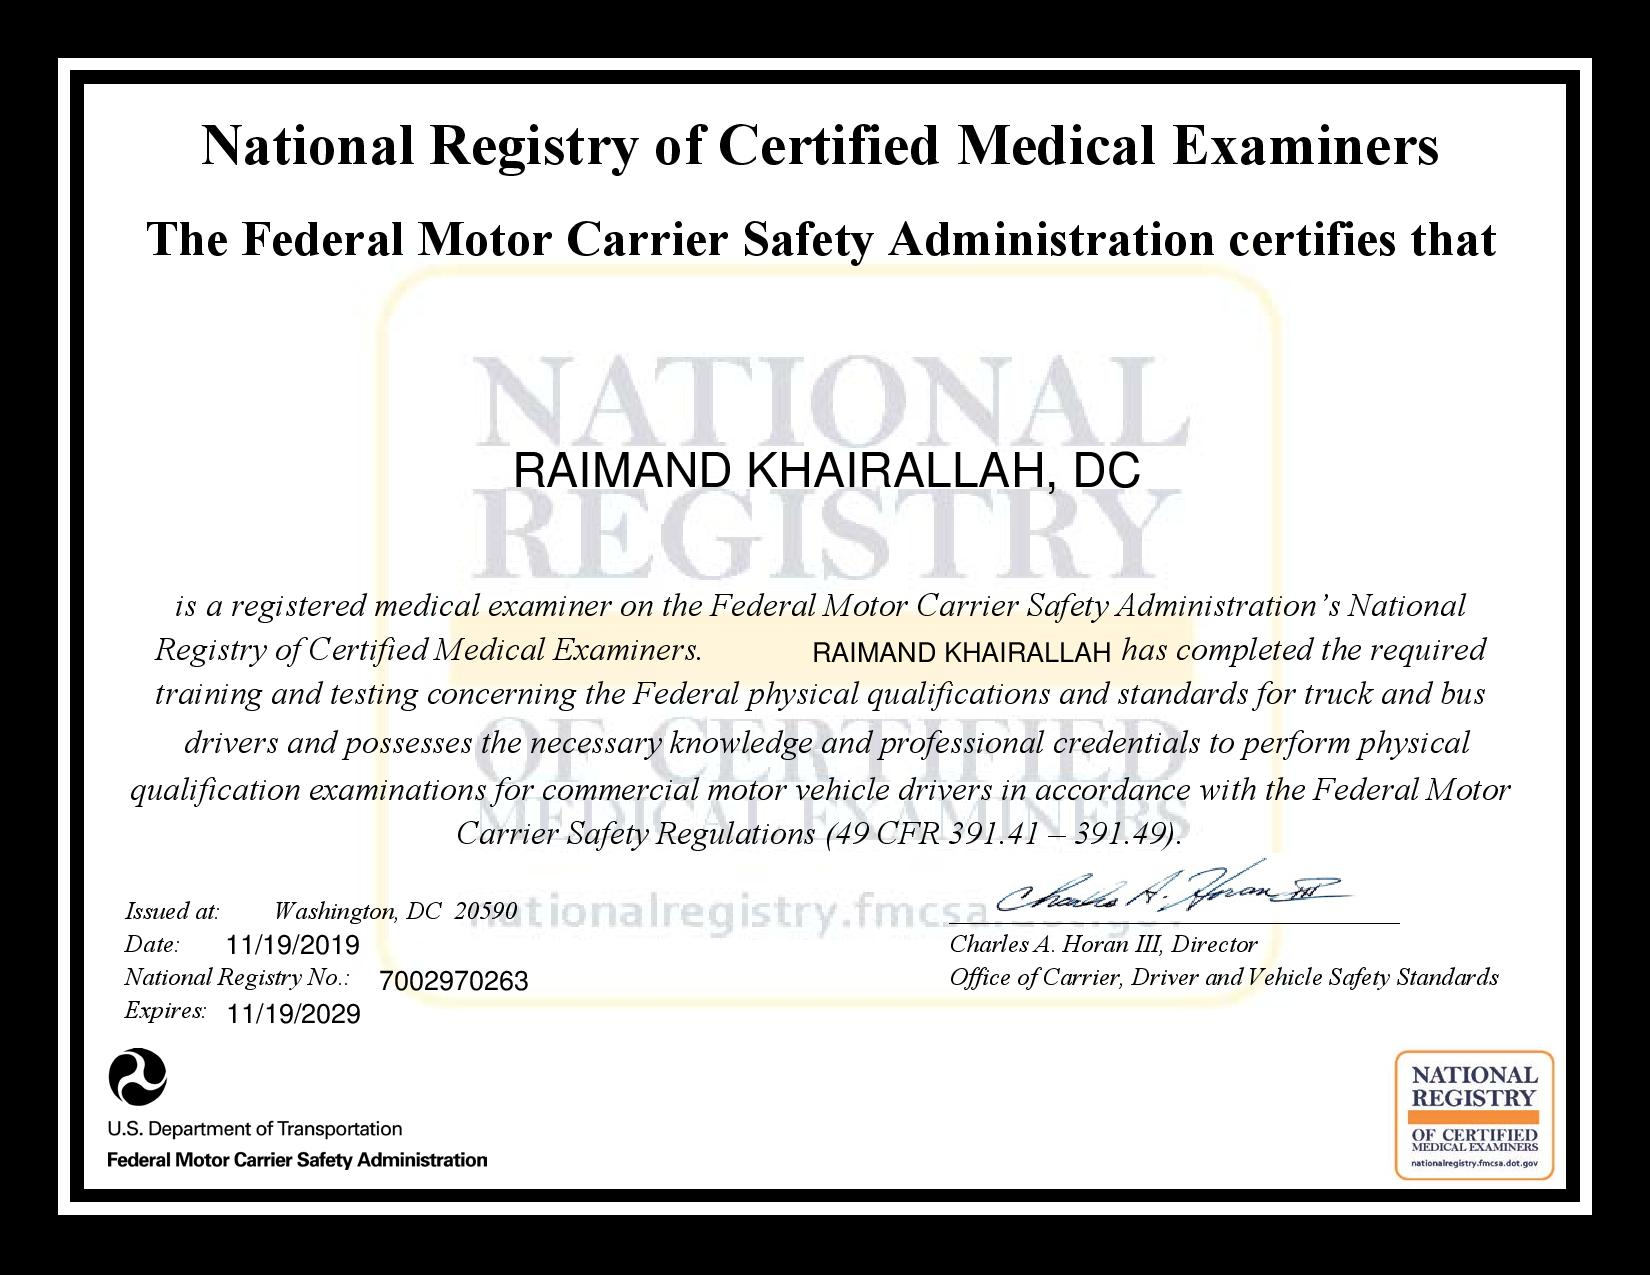 DOT7002970263 certificate page 001